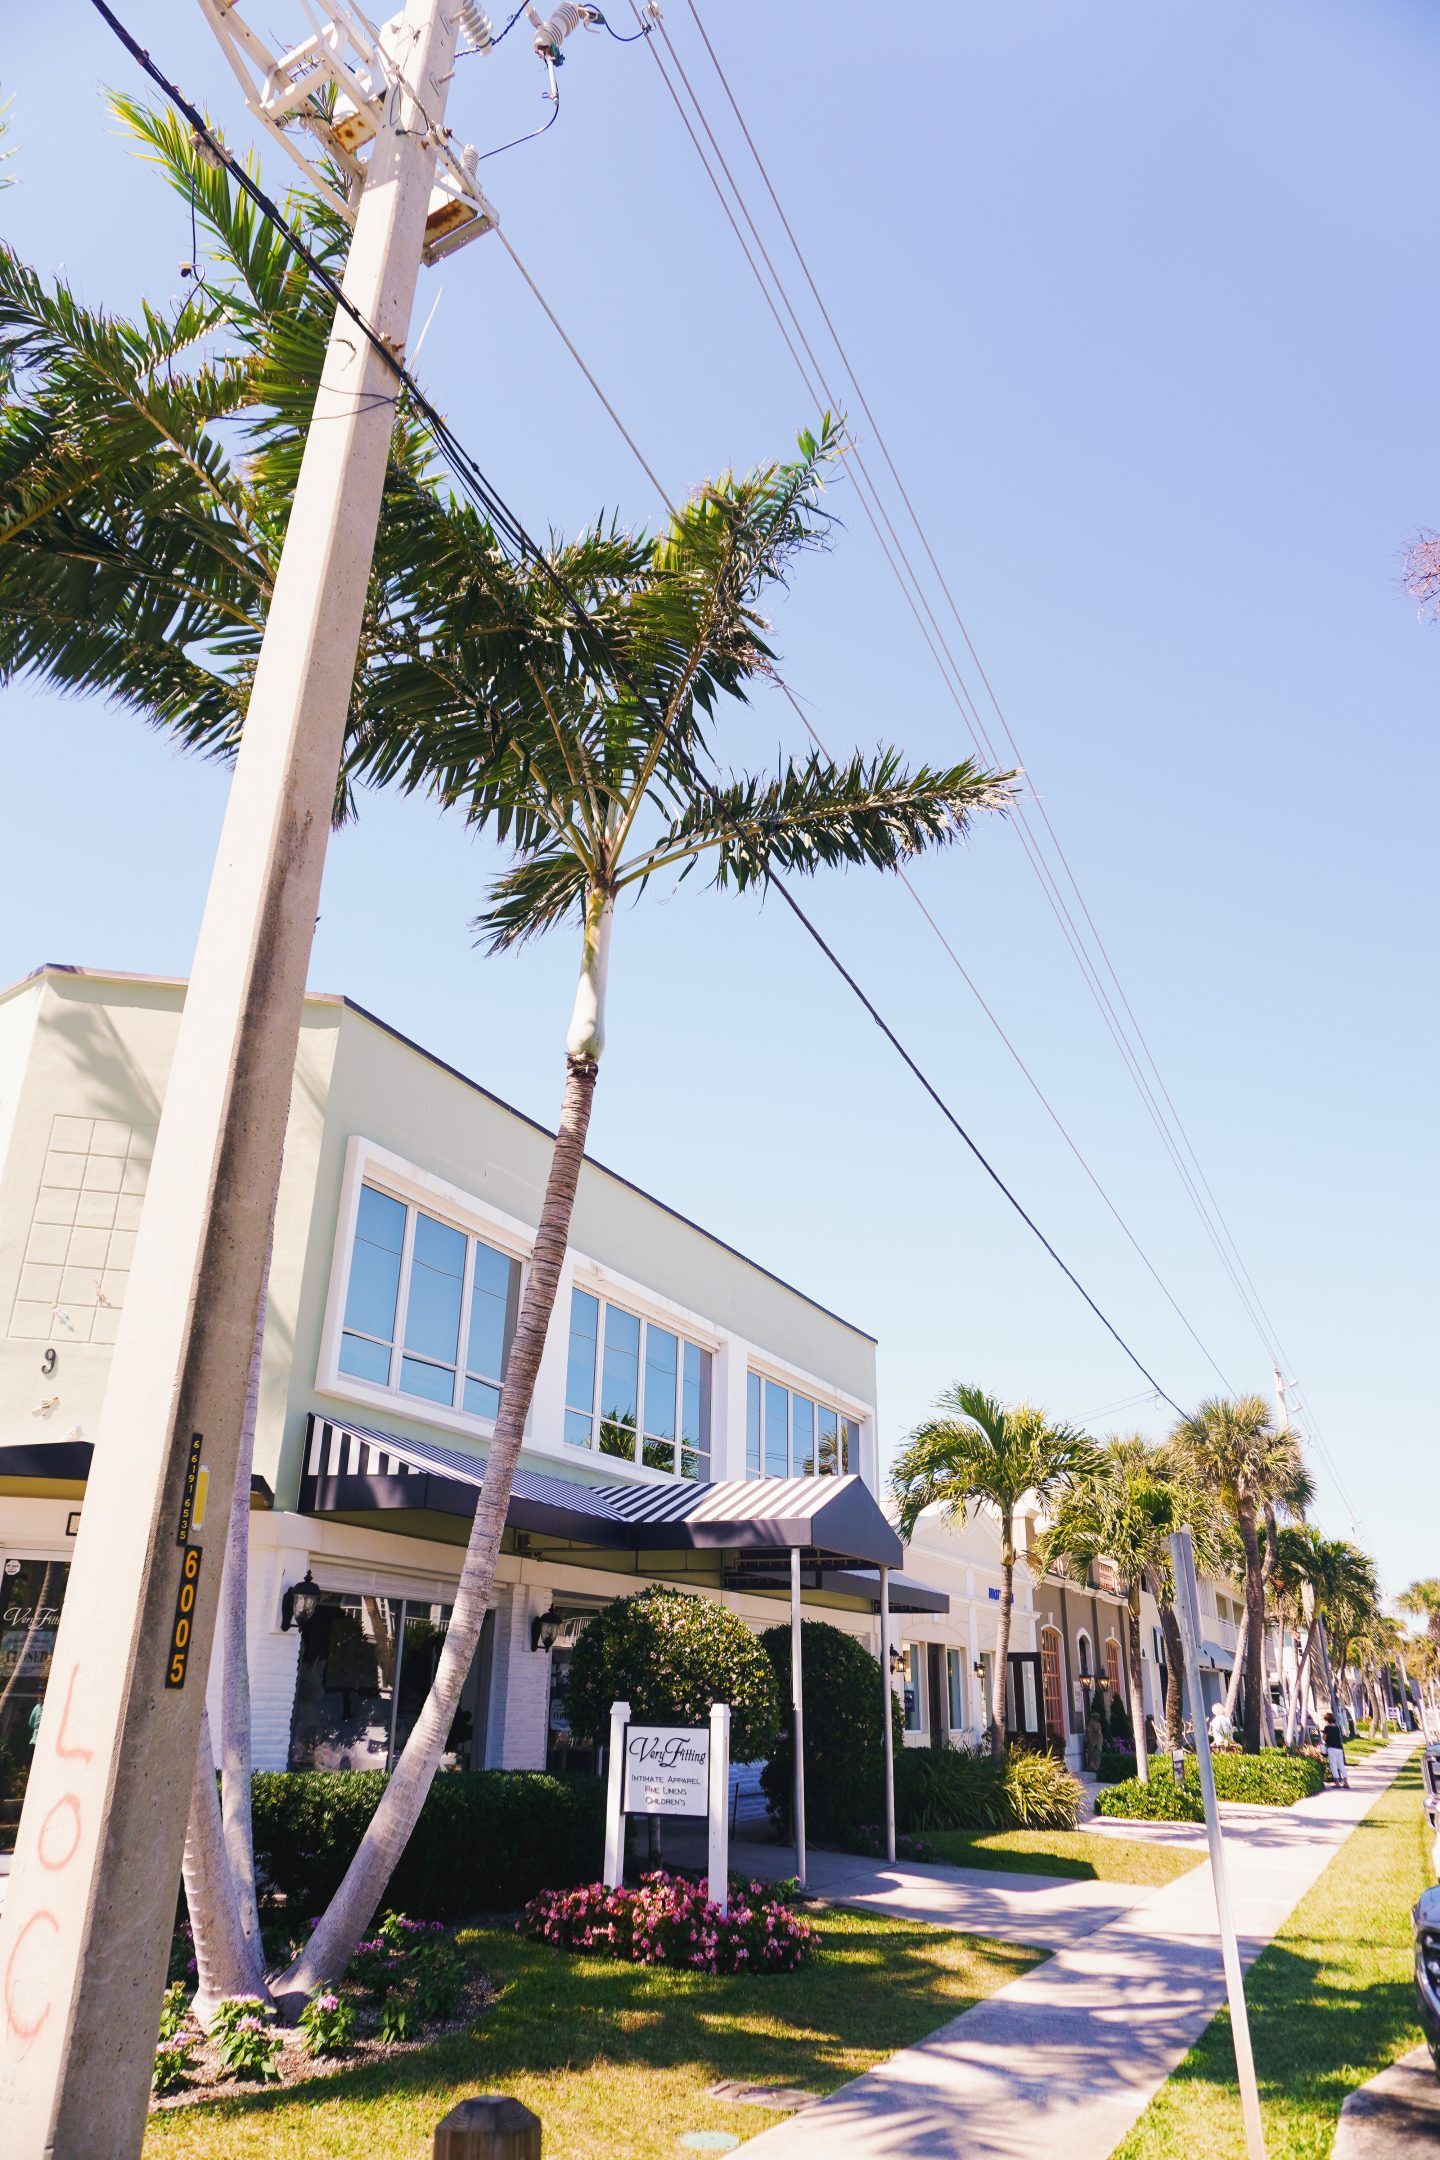 Vero Beach Travel Guide, where to stay, where to eat, and what to do in Vero Beach, Florida